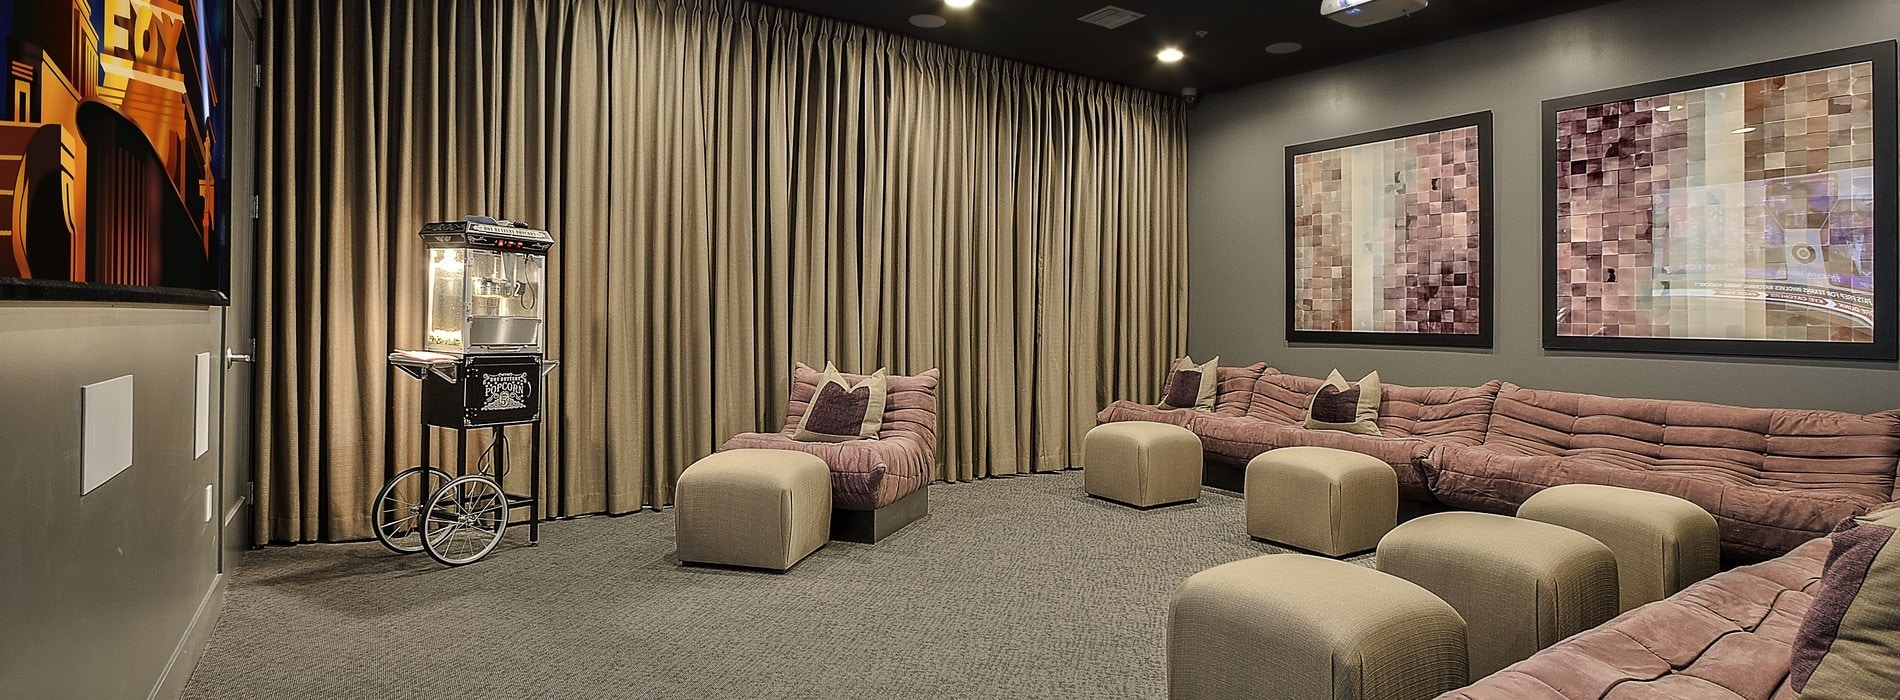 to see the 2 bedroom apartments las vegas gallery in full resolution